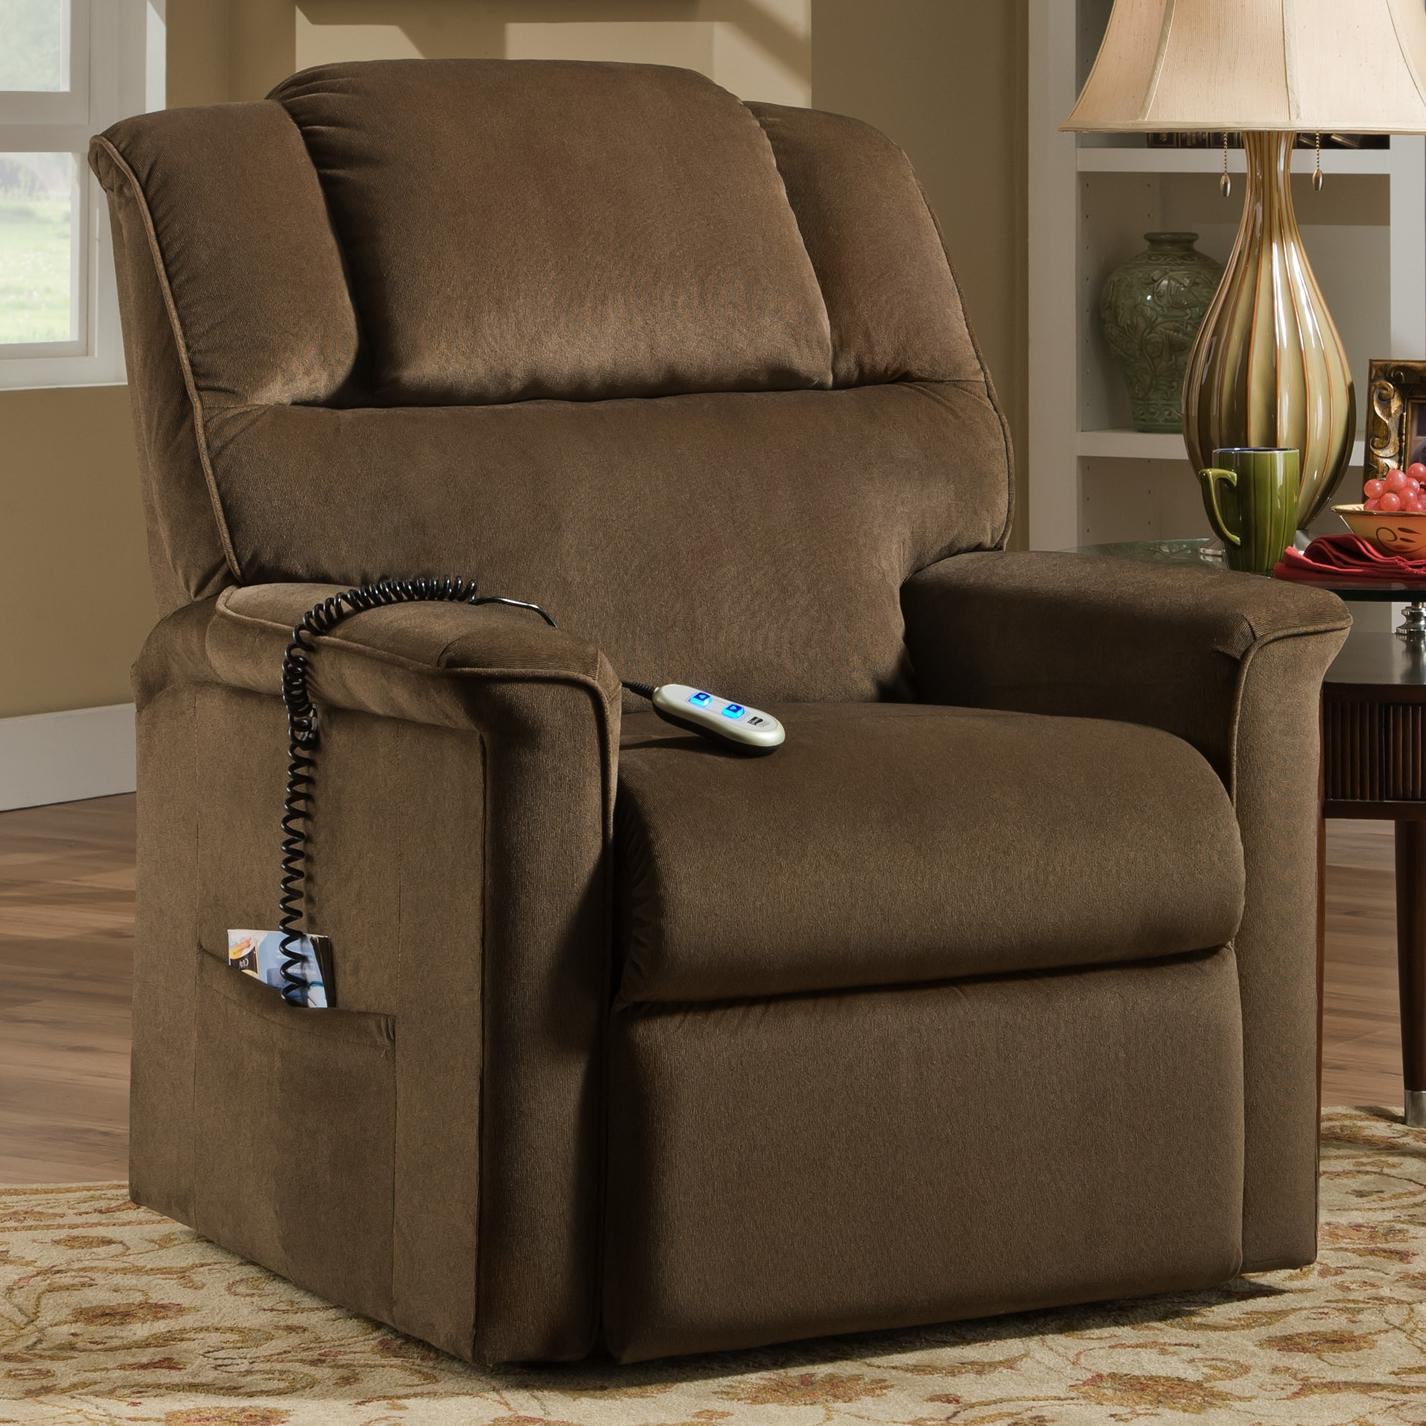 Franklin Recliners Trinity Lift Recliner by Franklin at Wilcox Furniture